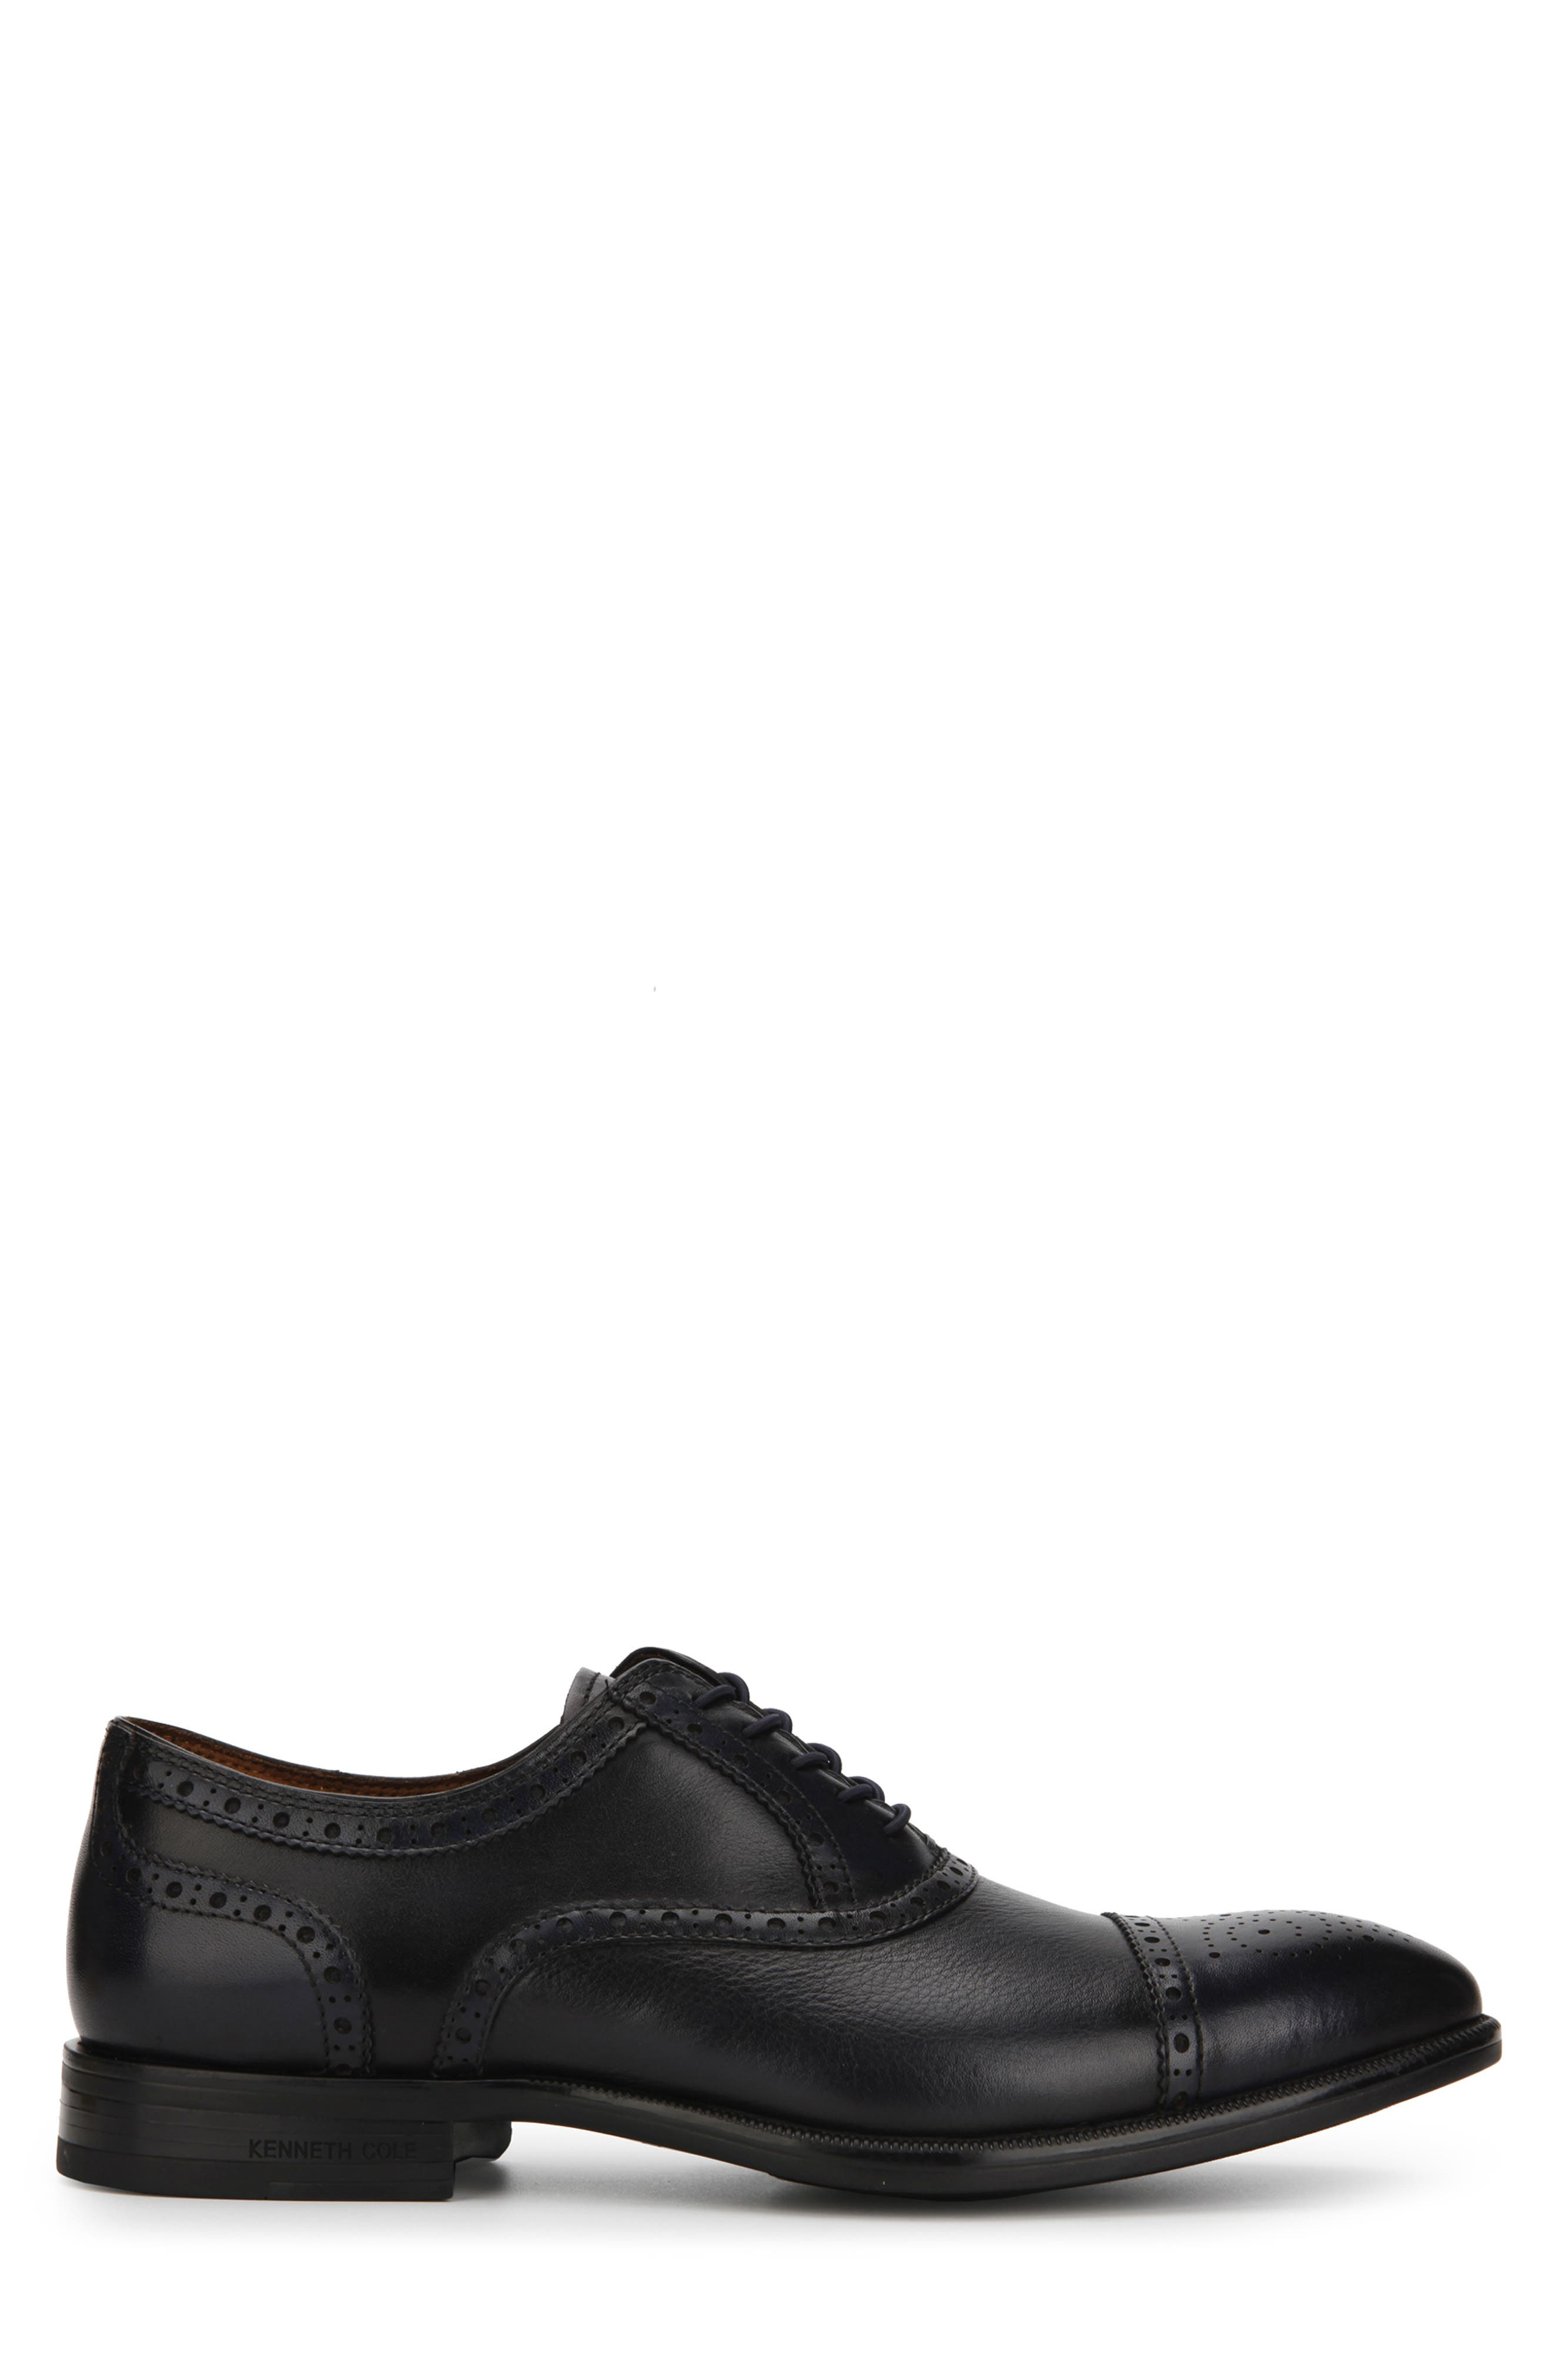 KENNETH COLE NEW YORK, Futurepod Cap Toe Oxford, Alternate thumbnail 2, color, NAVY TUMBLED LEATHER